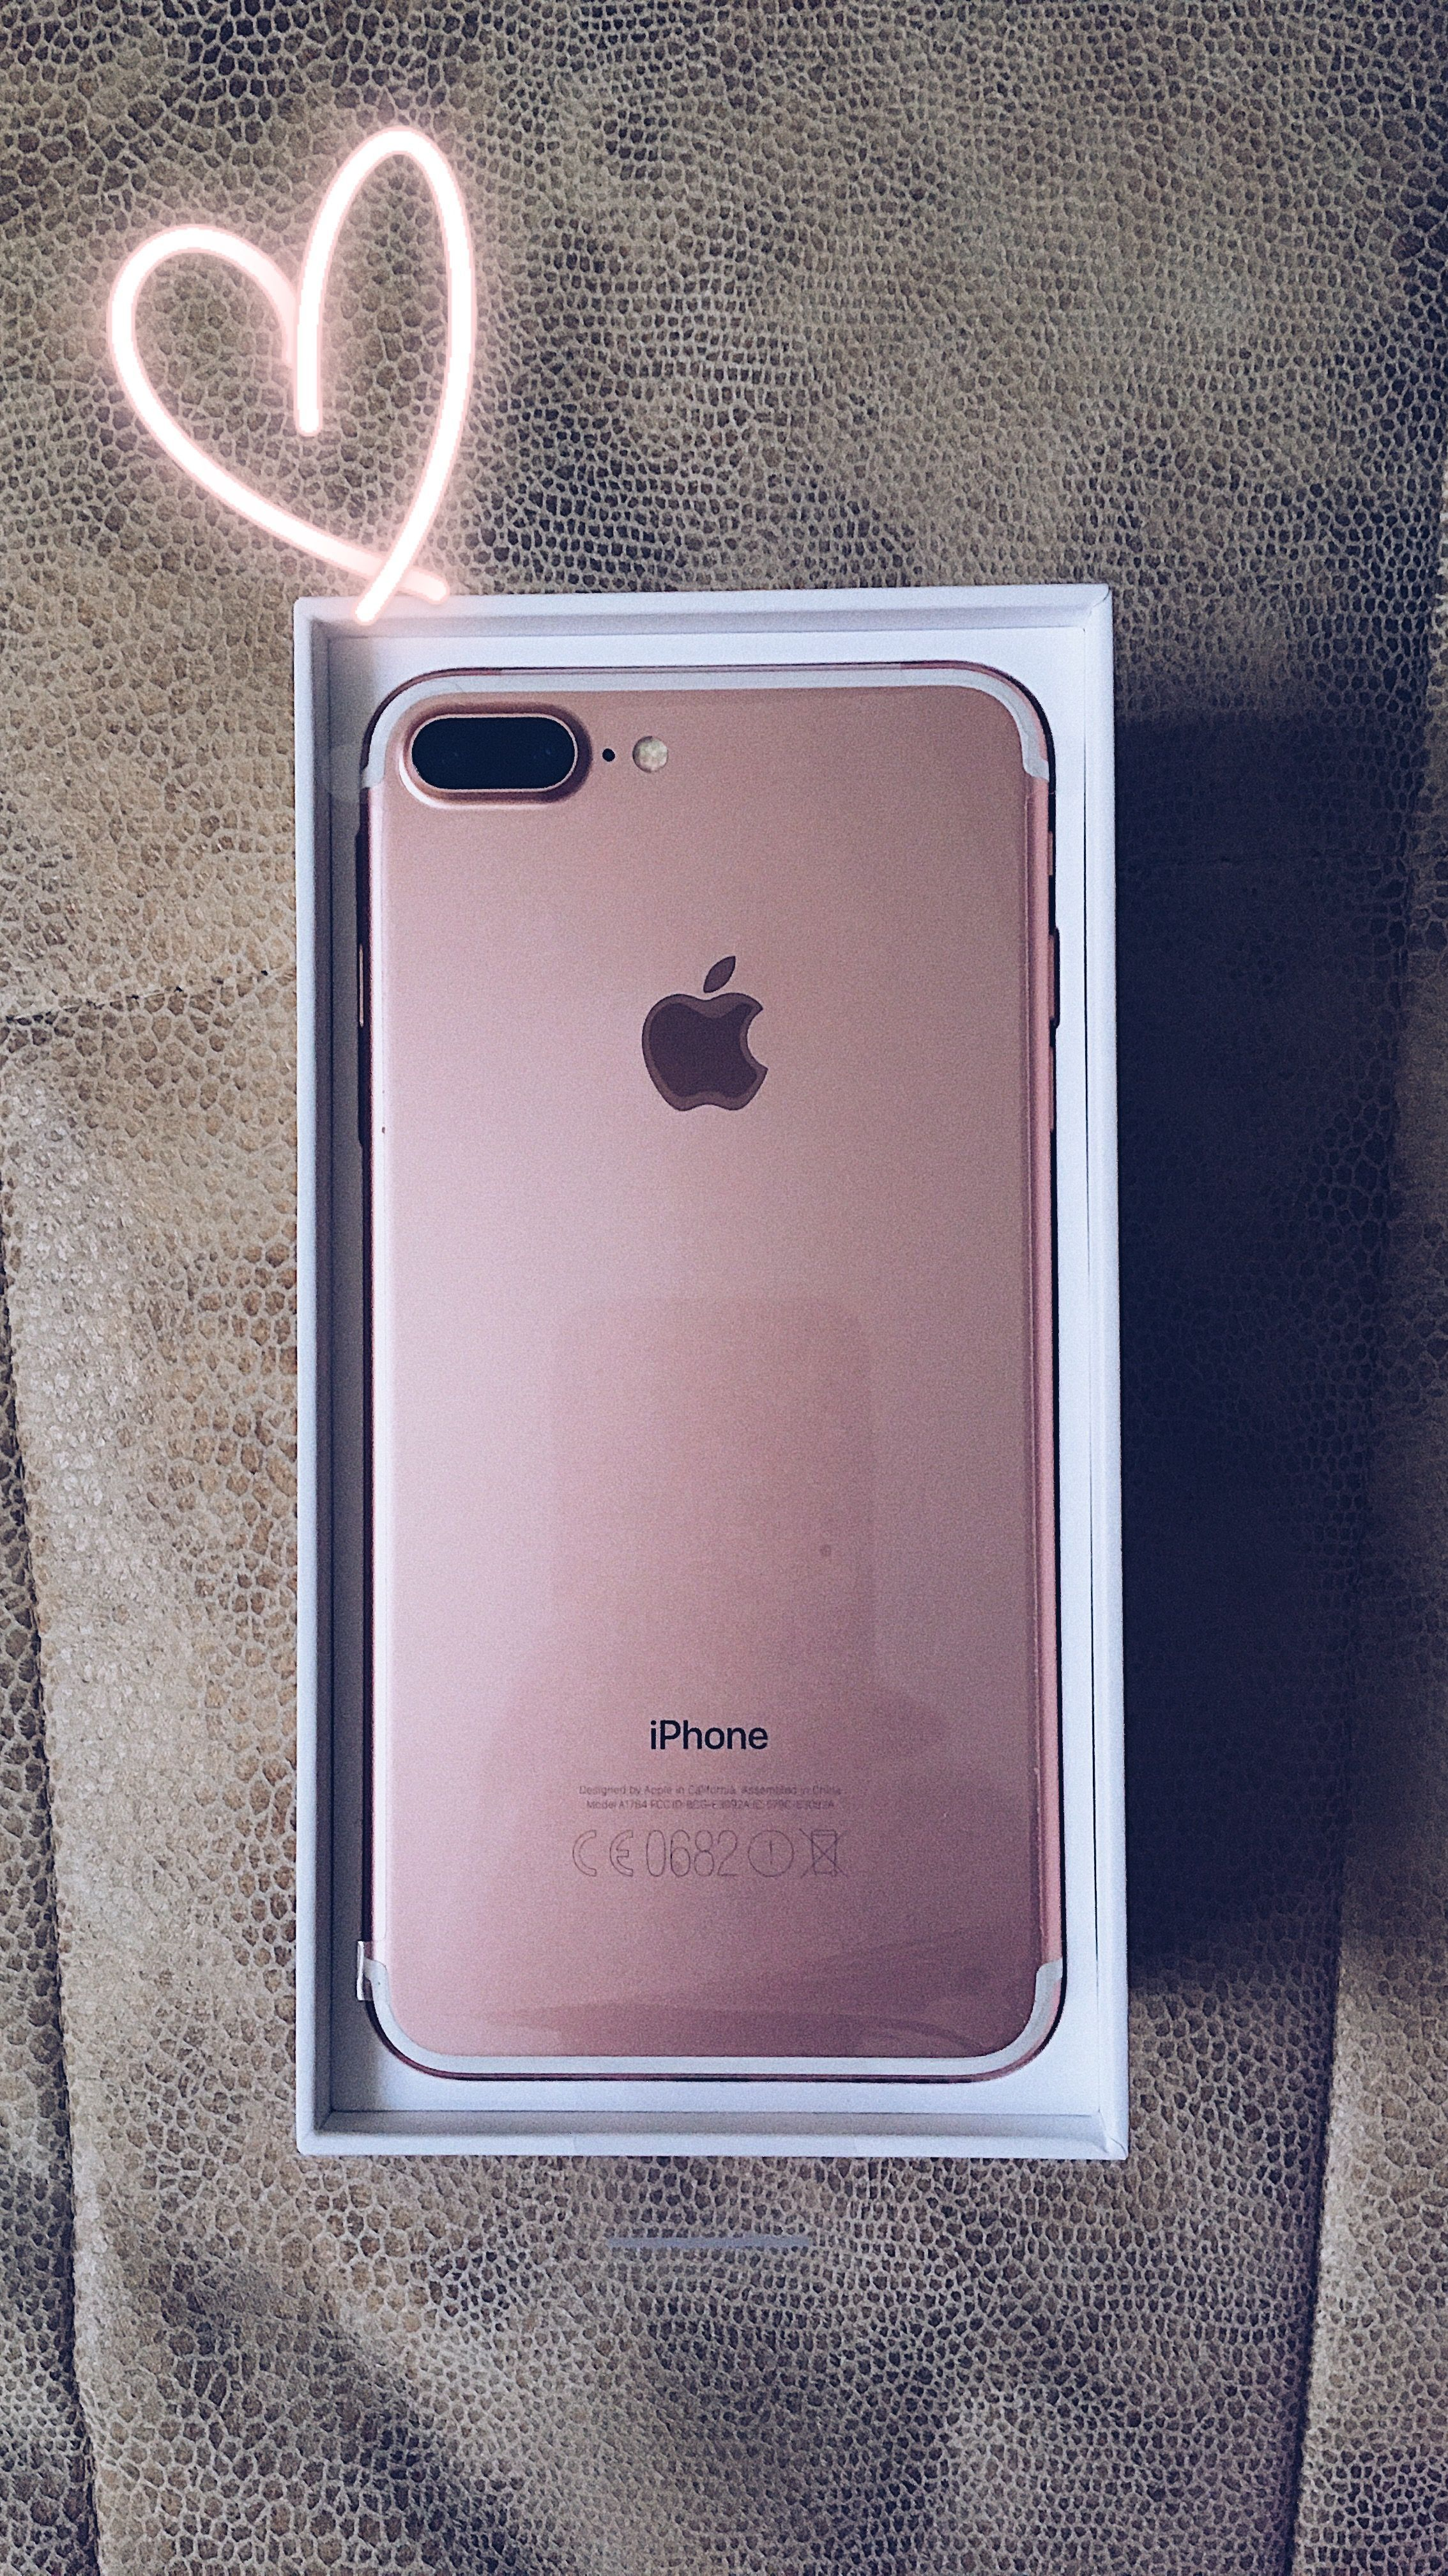 Iphone 7 plus rose gold   Iphone, Iphone 7plus rose gold, Iphone obsession